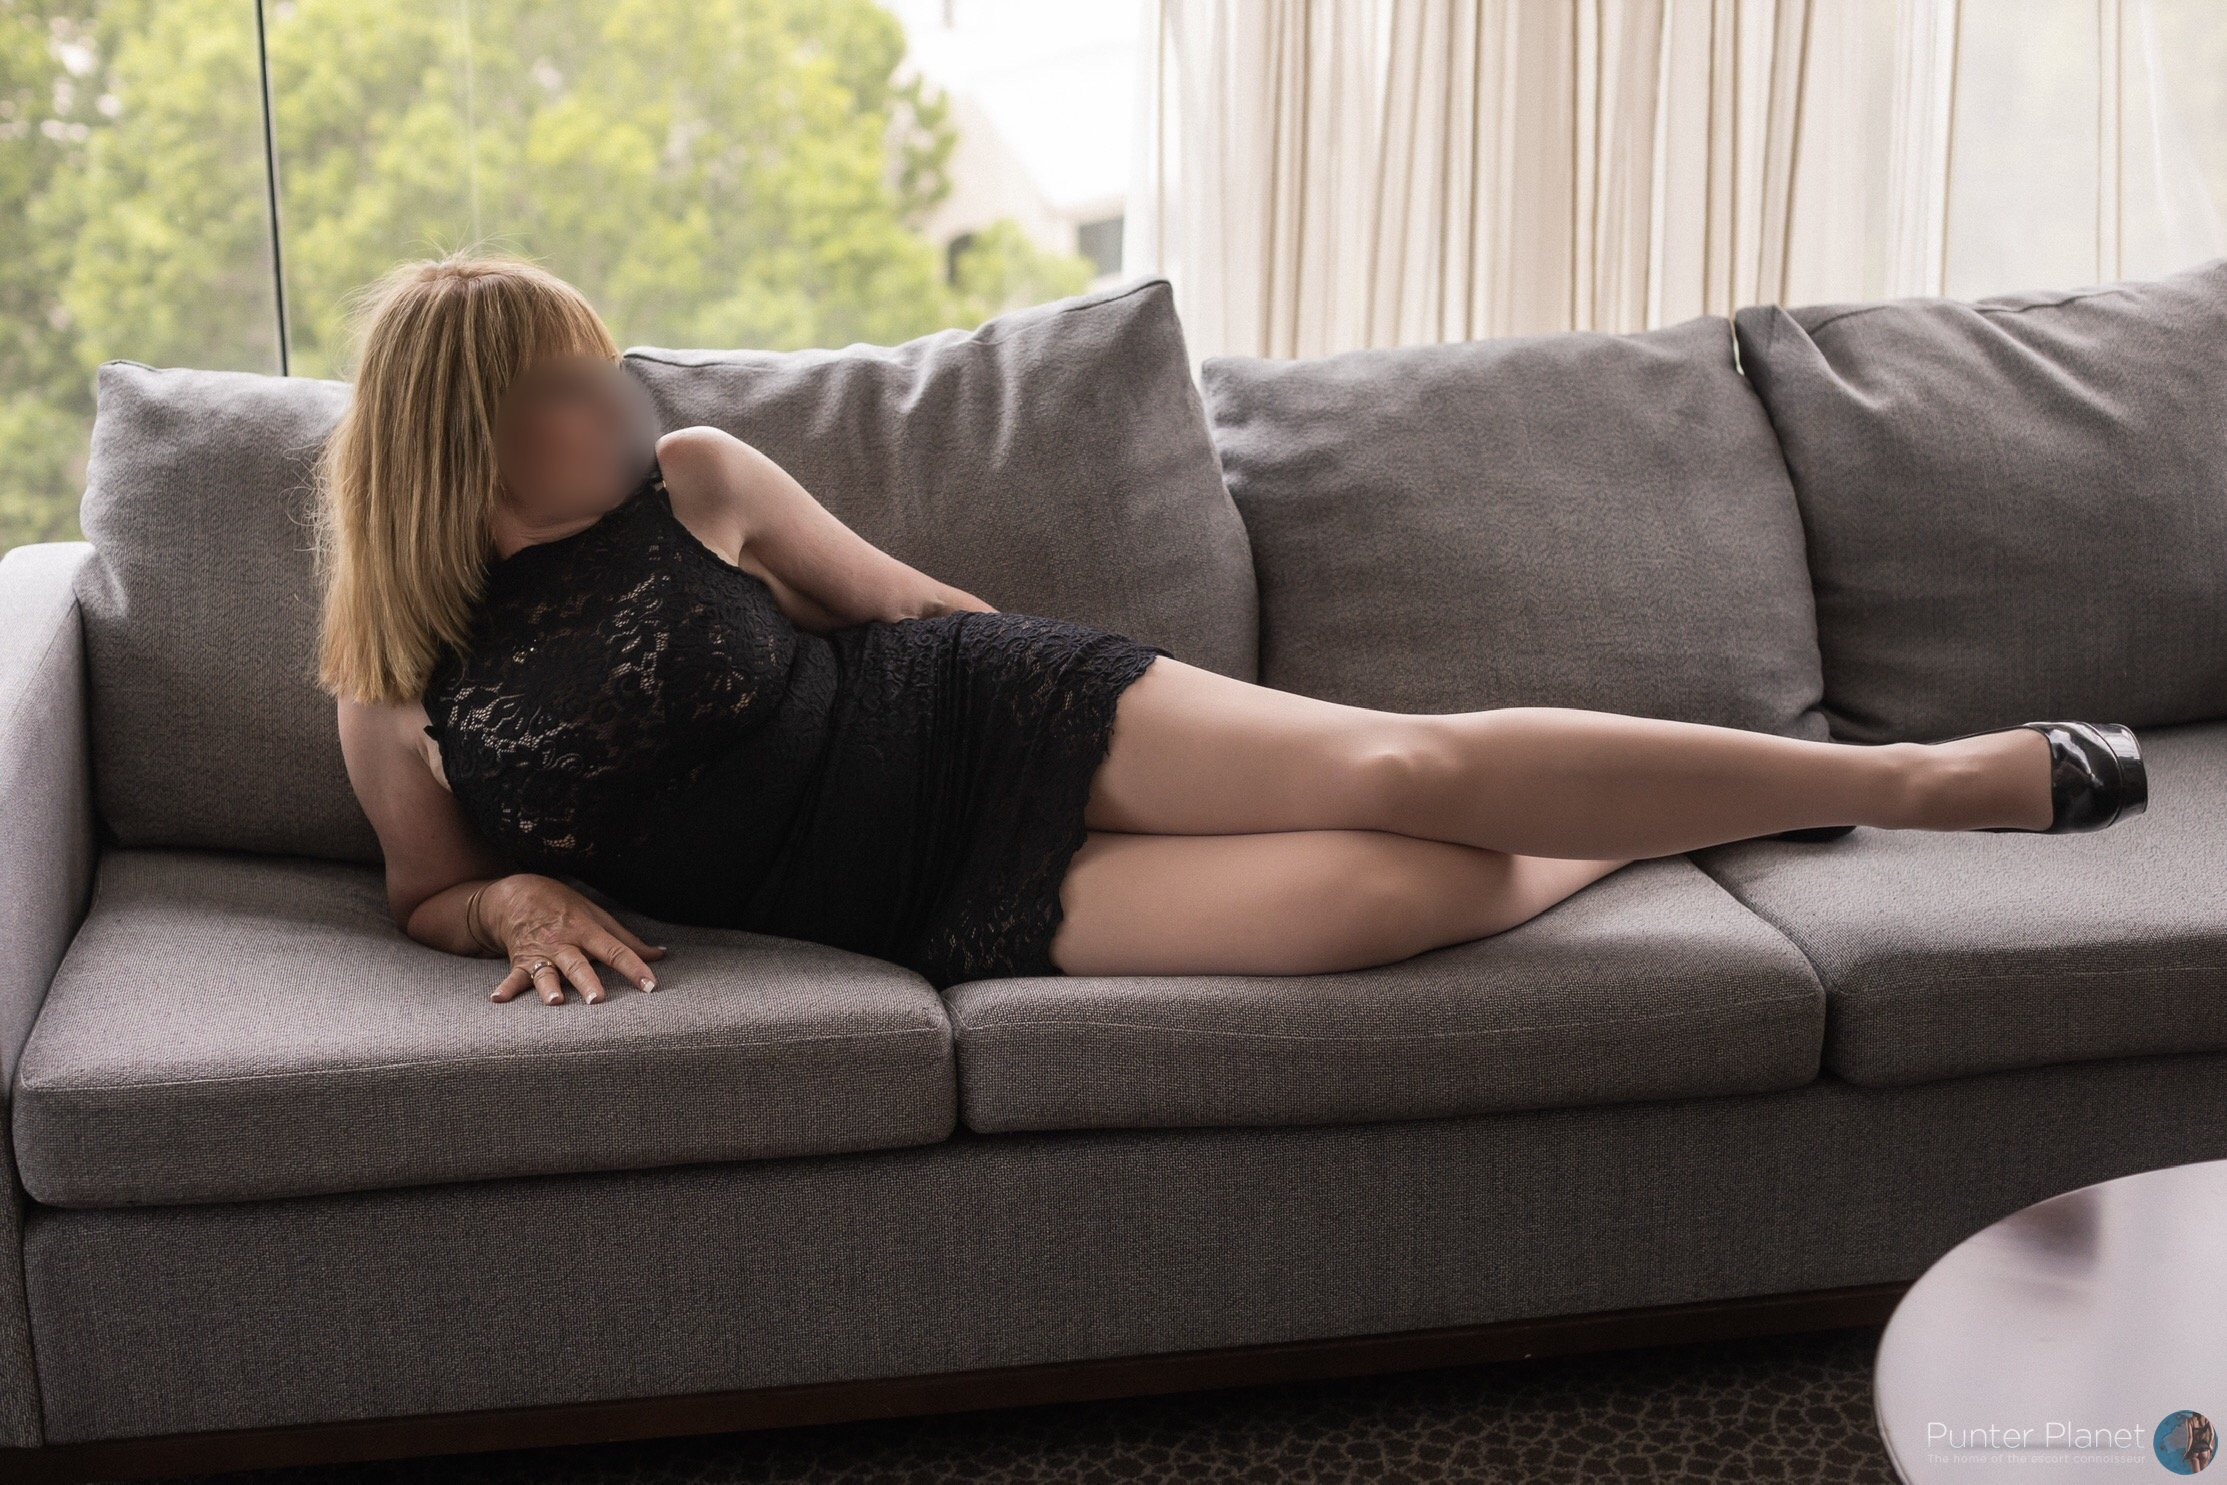 Cathryn is in her 60's and provides the ultimate MILF experience!